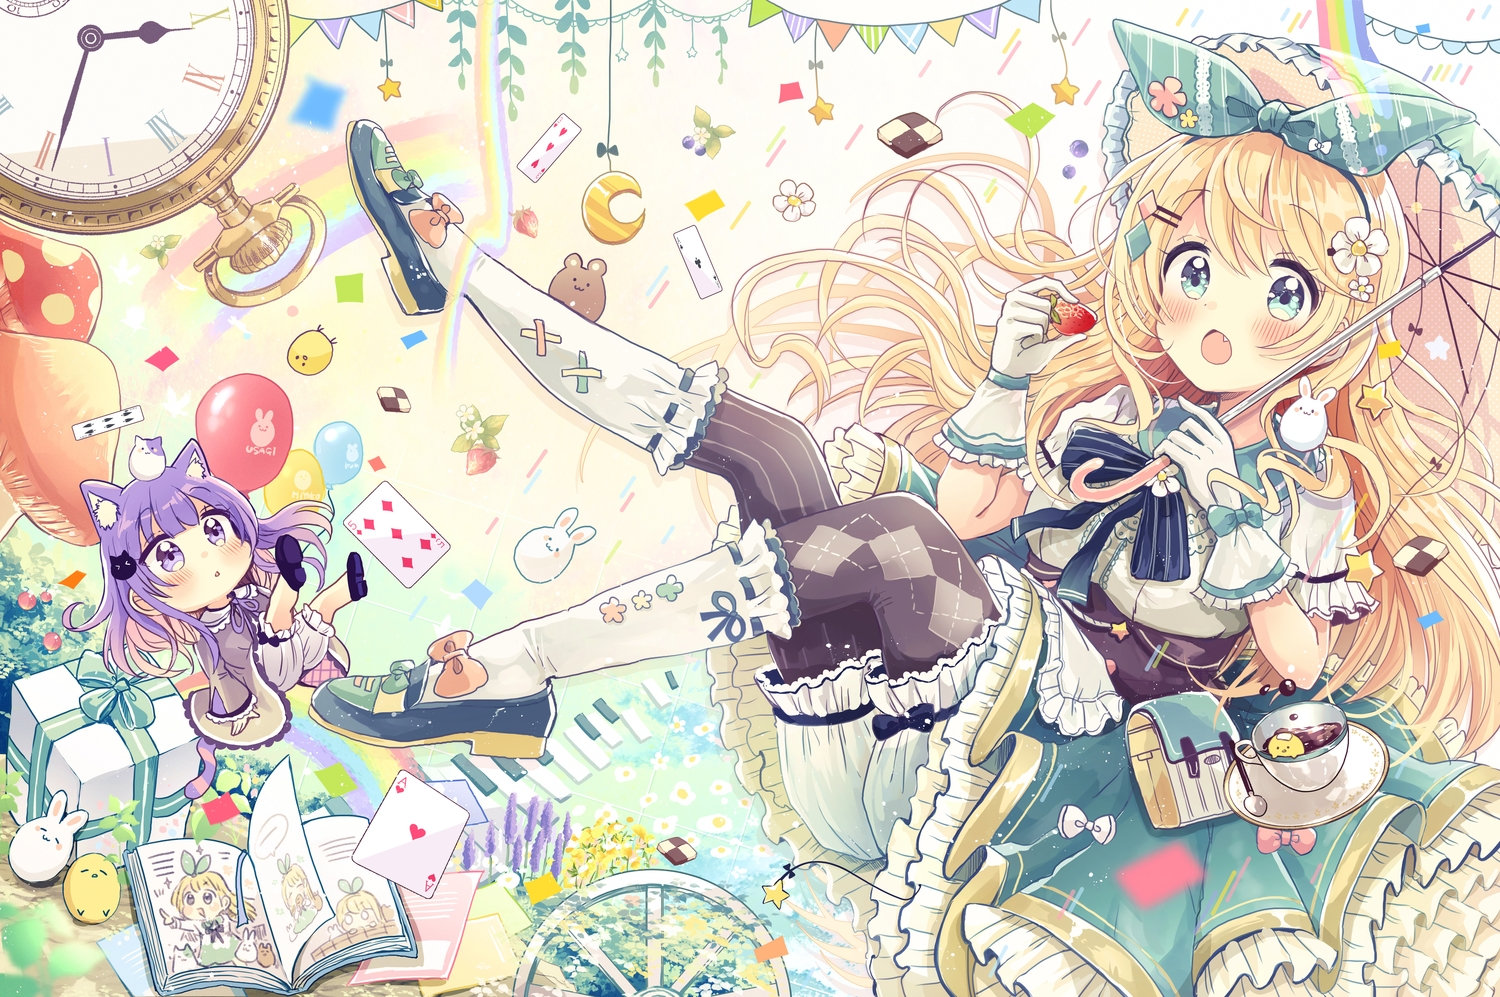 2girls alice_(wonderland) animal animal_ears aqua_eyes bird blonde_hair bloomers blush book bow bunny catgirl chibi drink fang food fruit gloves headband kneehighs lolita_fashion original pantyhose purple_eyes purple_hair sakura_oriko strawberry tail umbrella